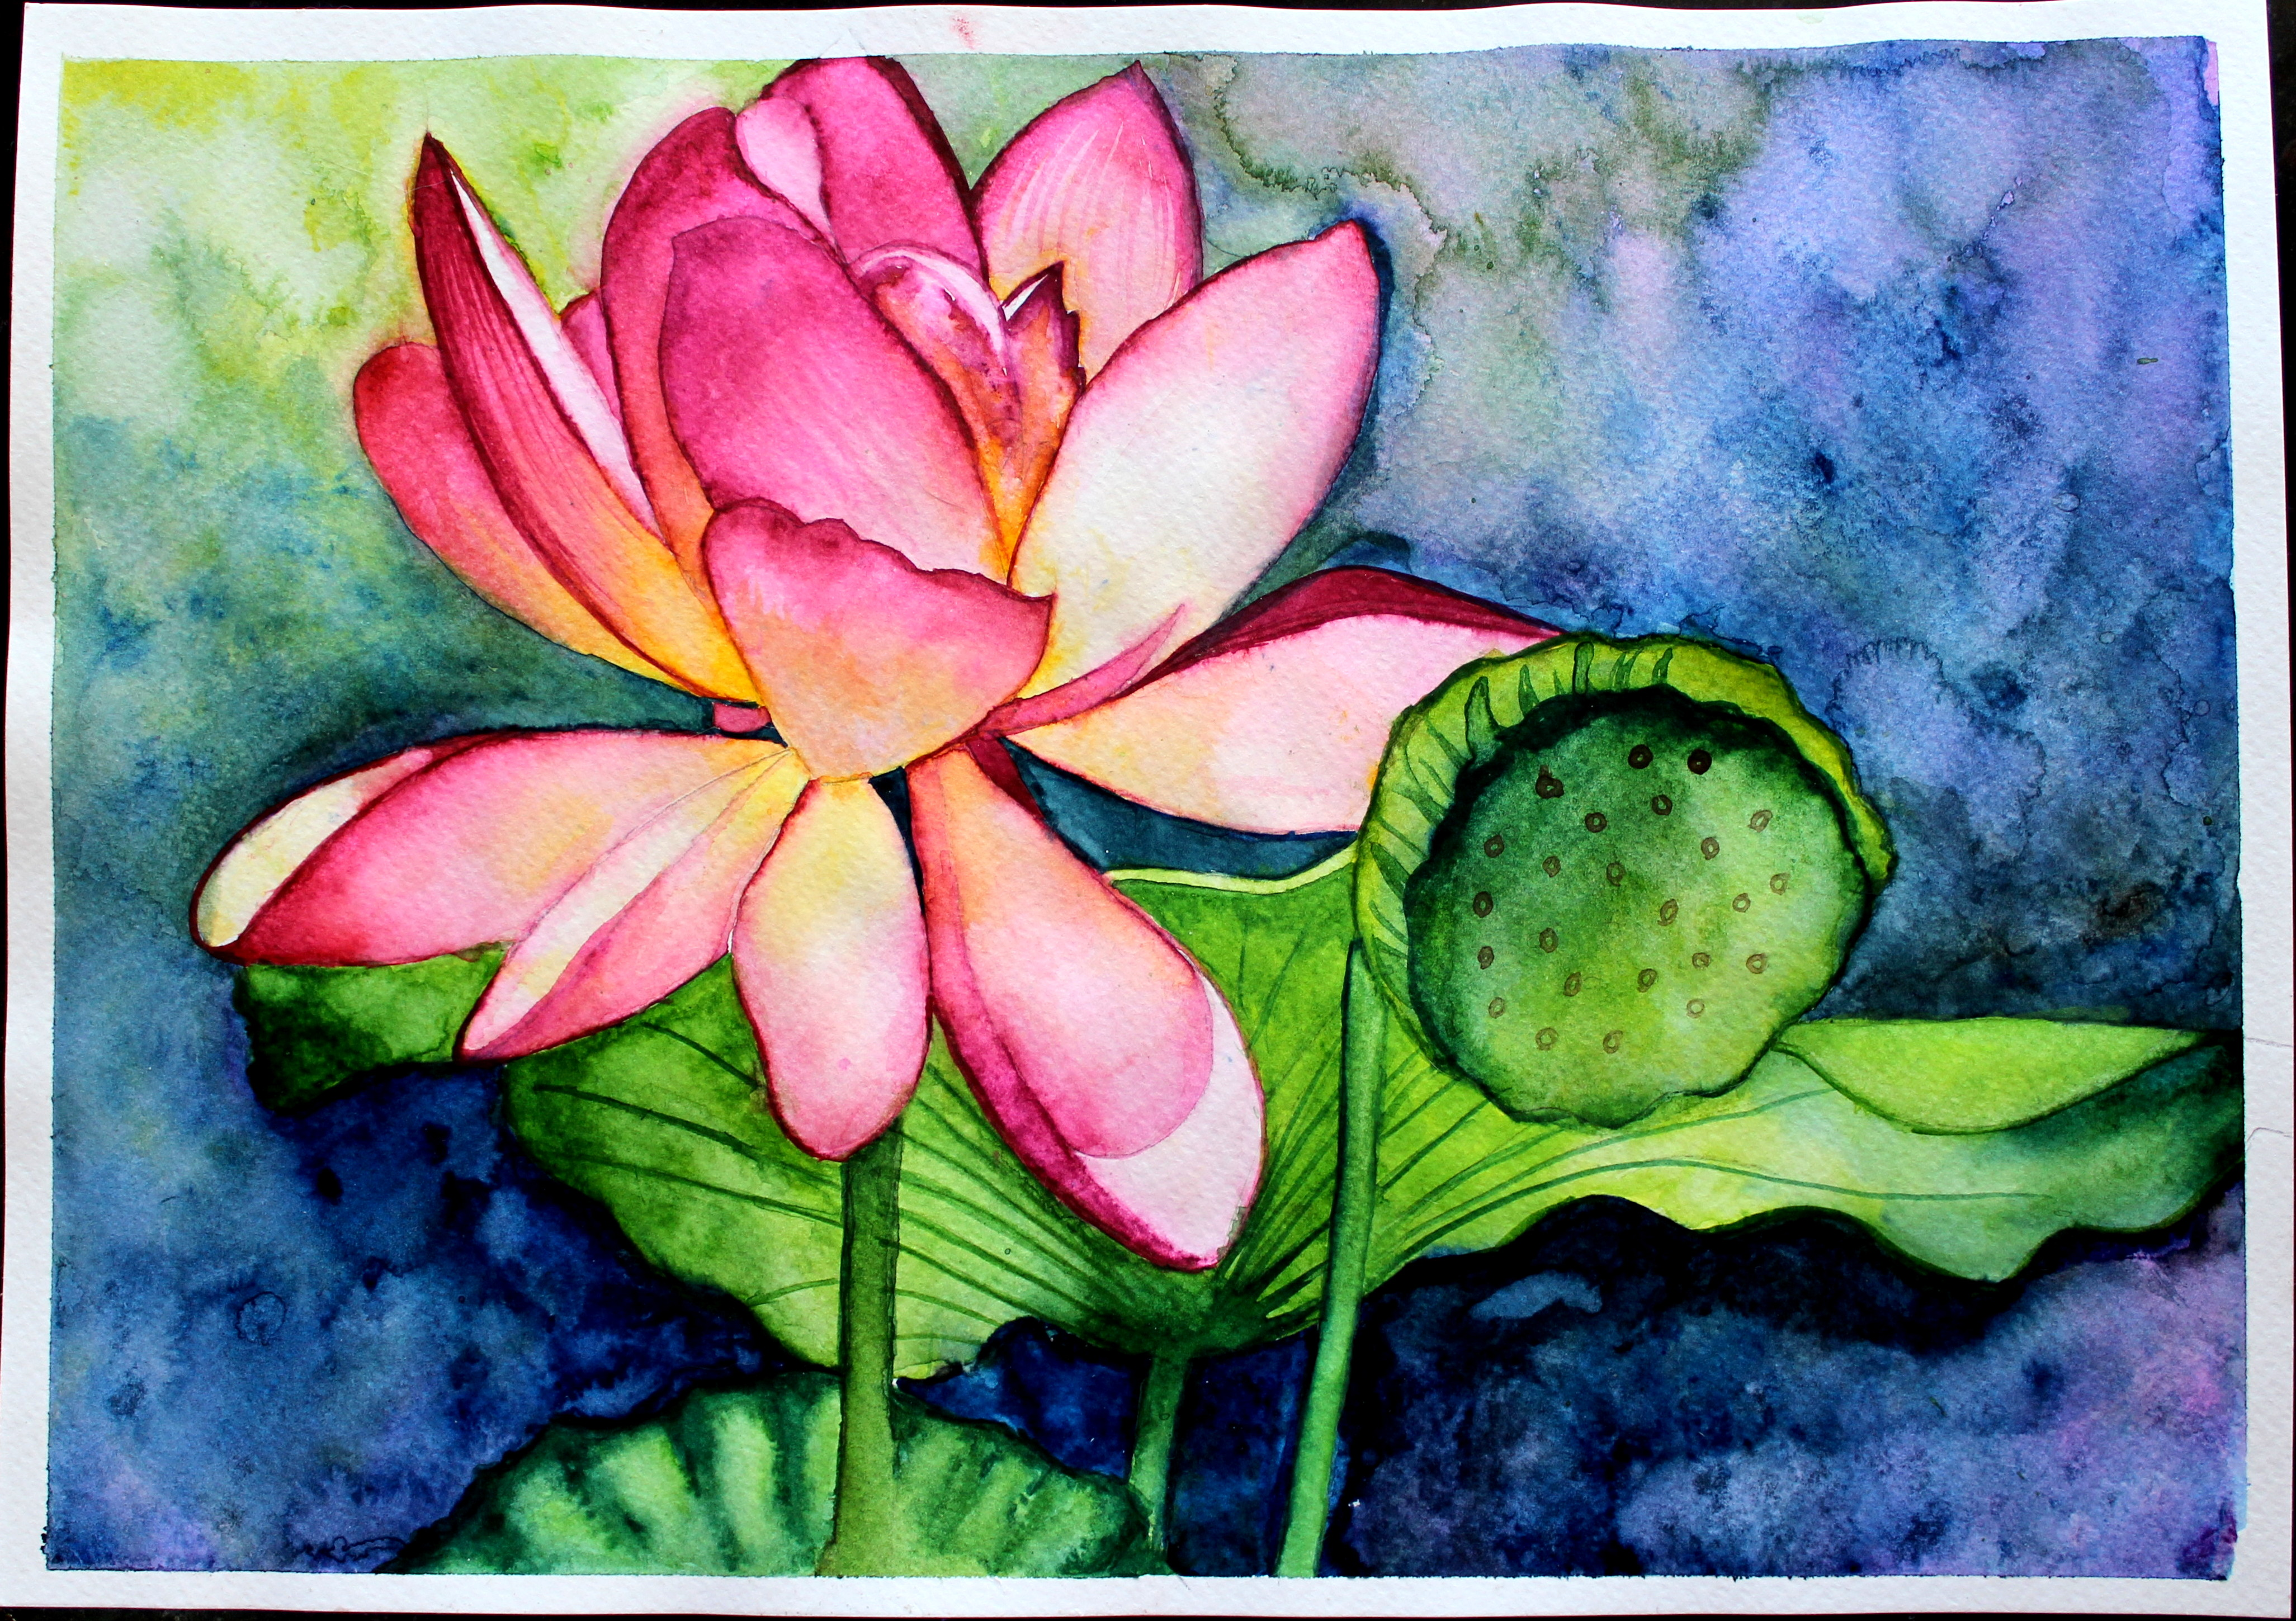 WATERCOLOR PAINTING LOTUS - CREATIVE ART